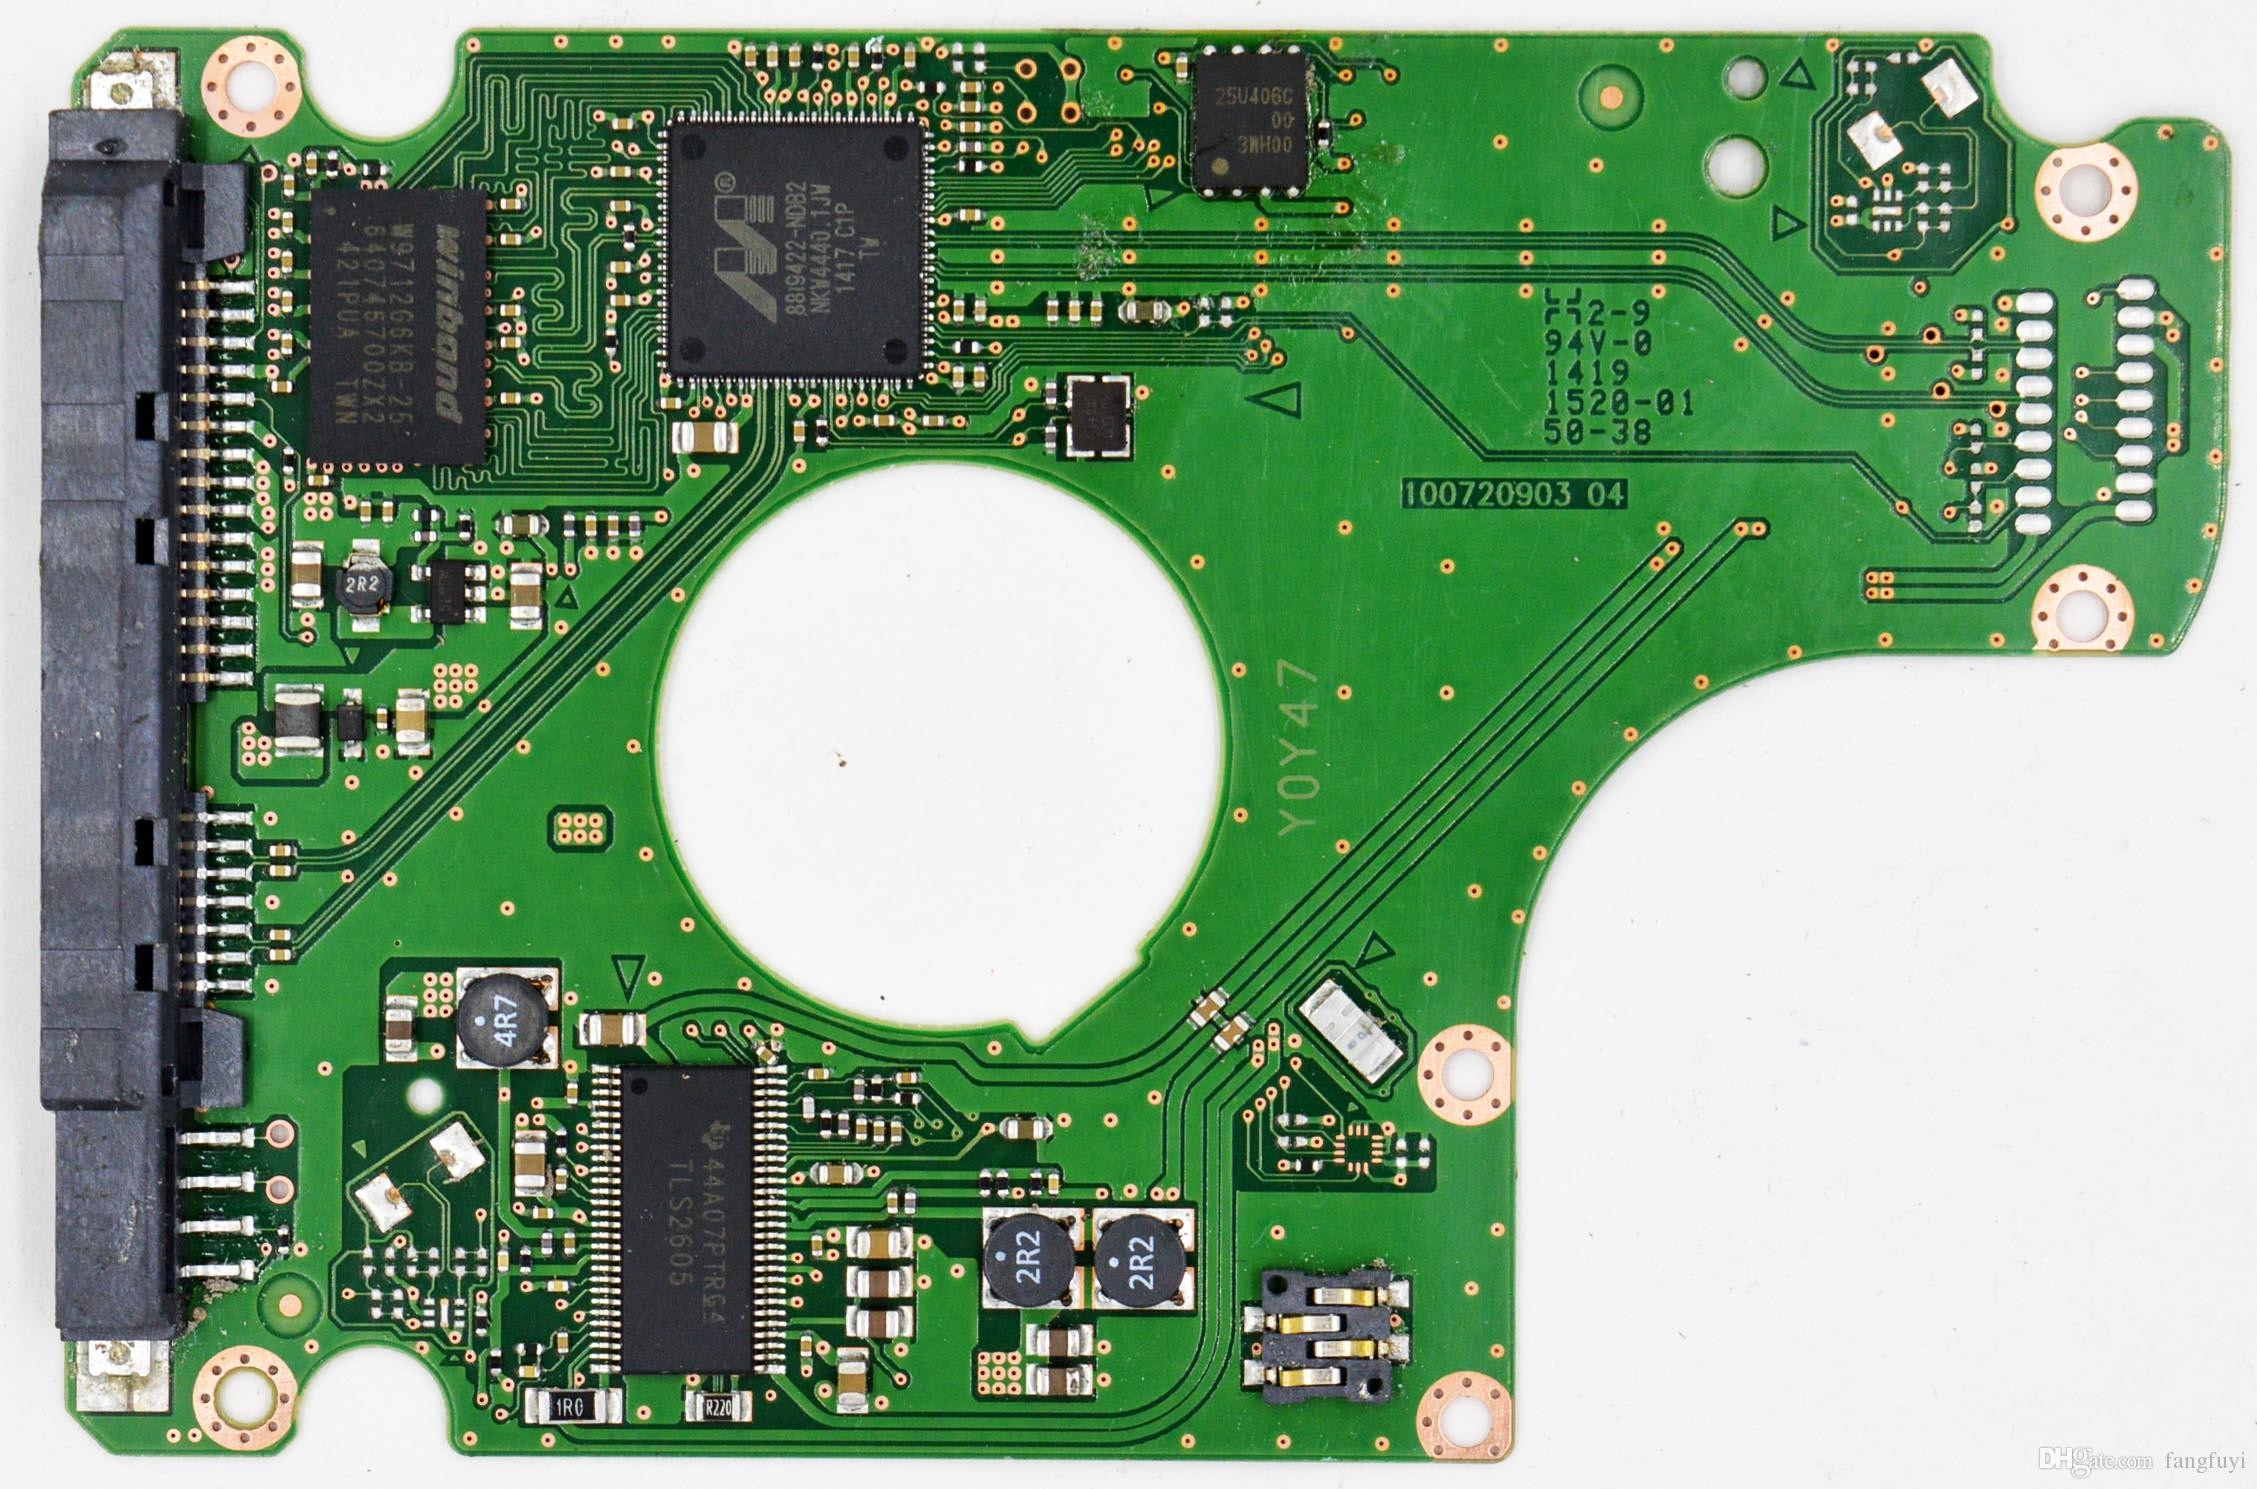 Stdr1000 Hdd Pcb For Seagate Logic Board Board Number 03 M8 rev 07 R00 Electronic Gad Electronic Outlet From Fangfuyi $20 11 Dhgate